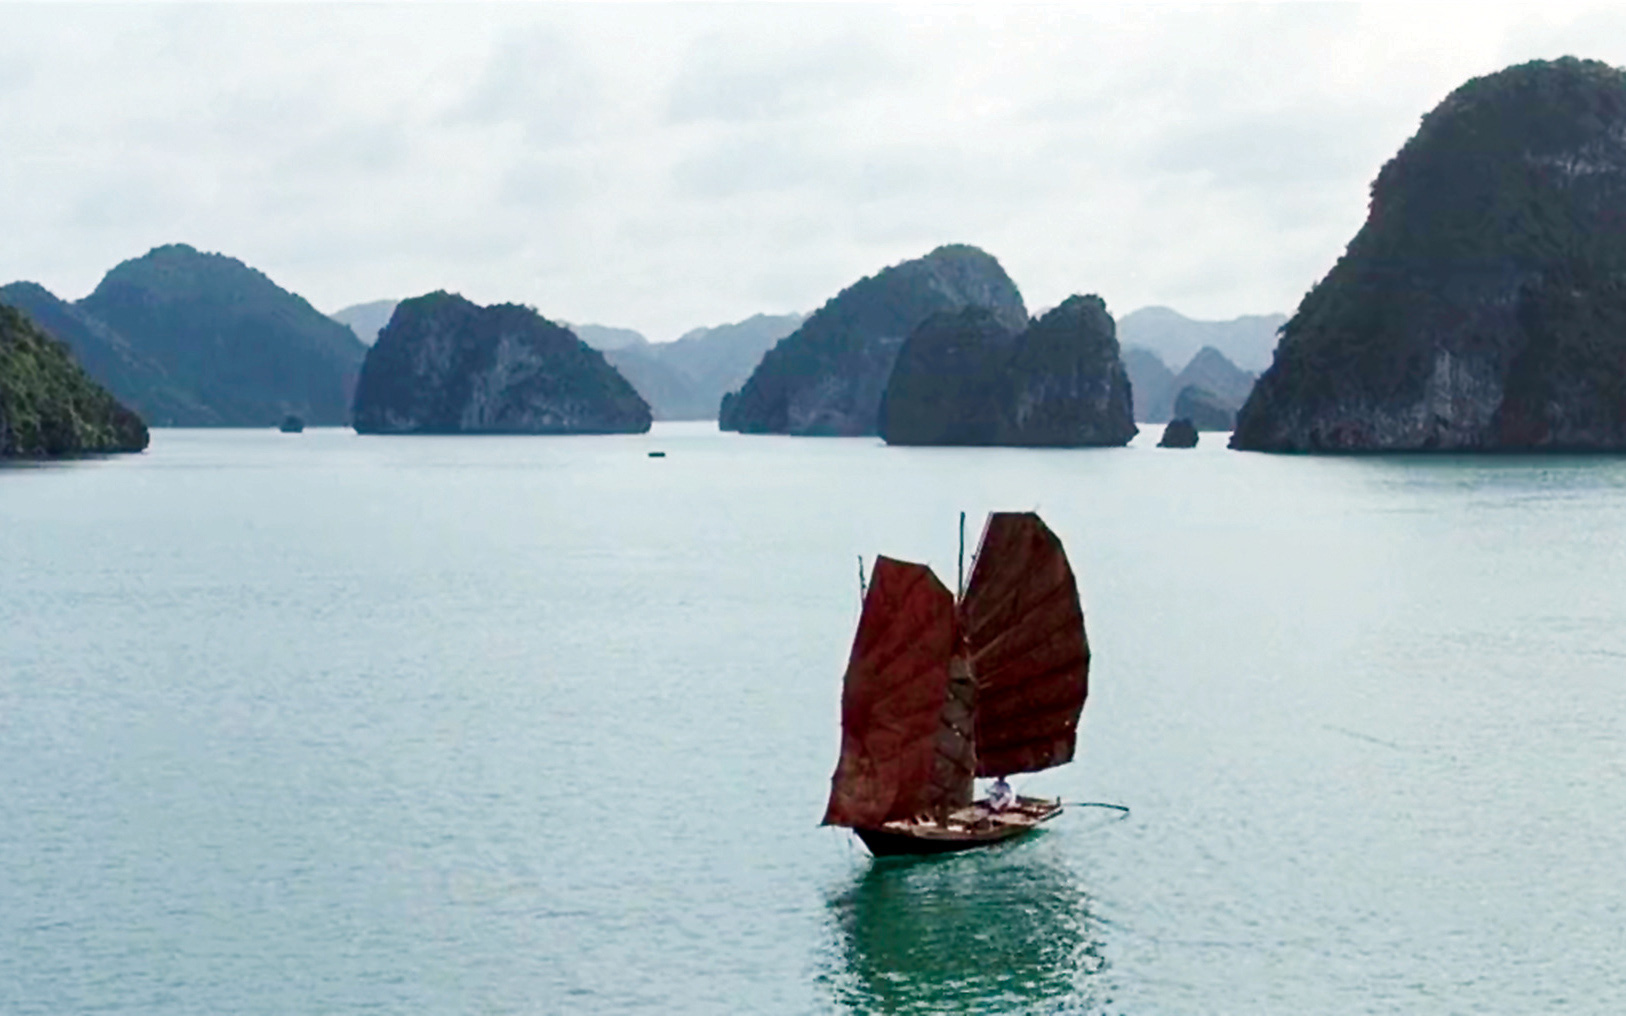 Ha Long Bay as captured in Régis Wargnier's 'Indochine' (1992)